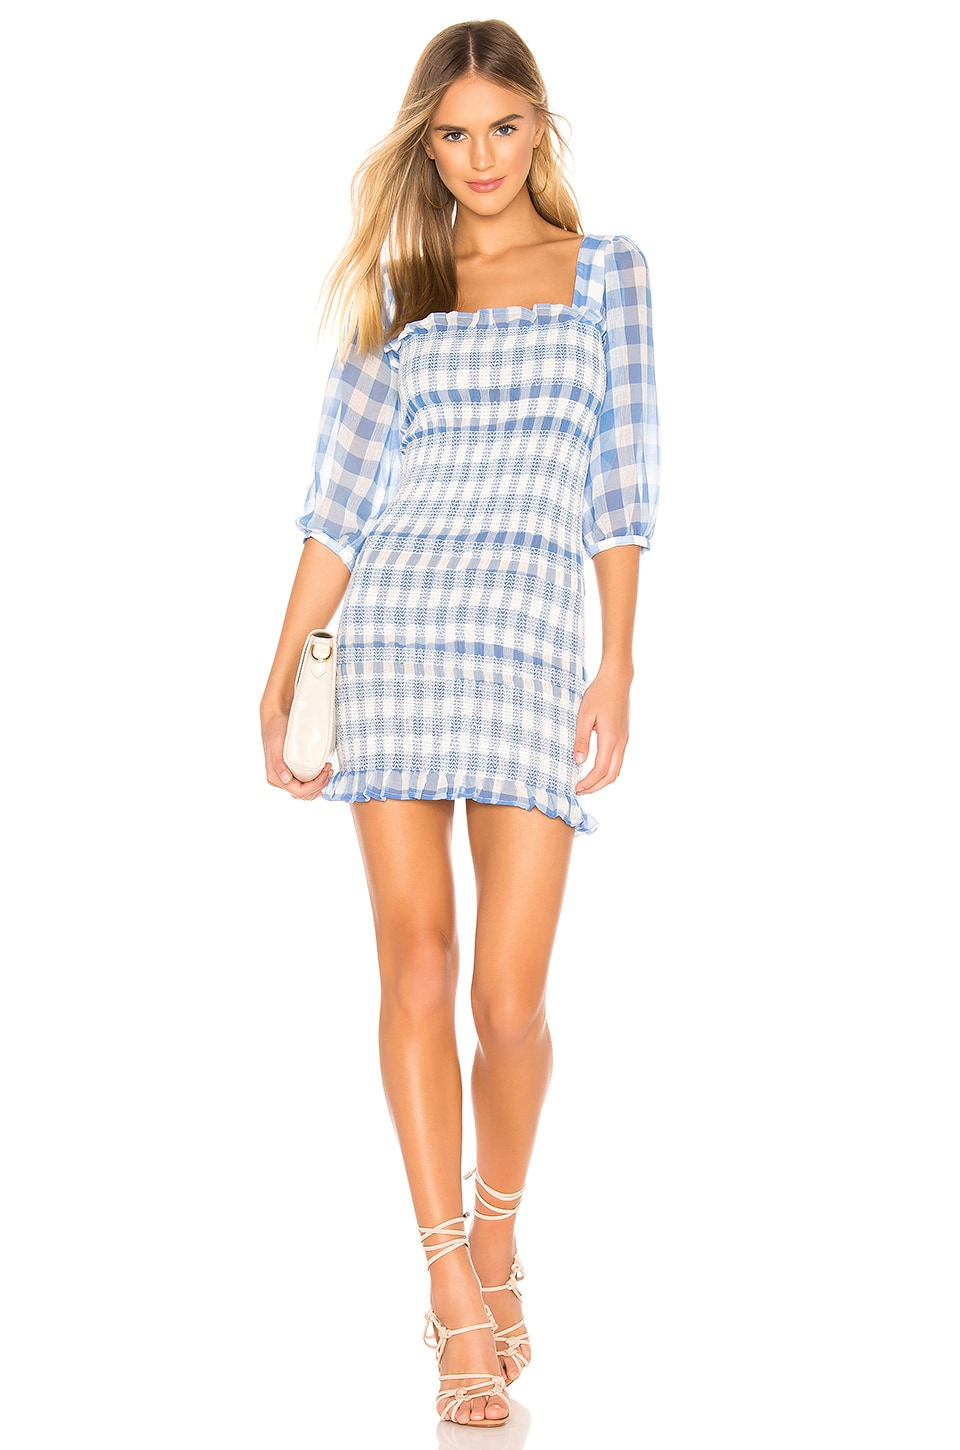 Capulet Siobhan Dress in Blue Gingham